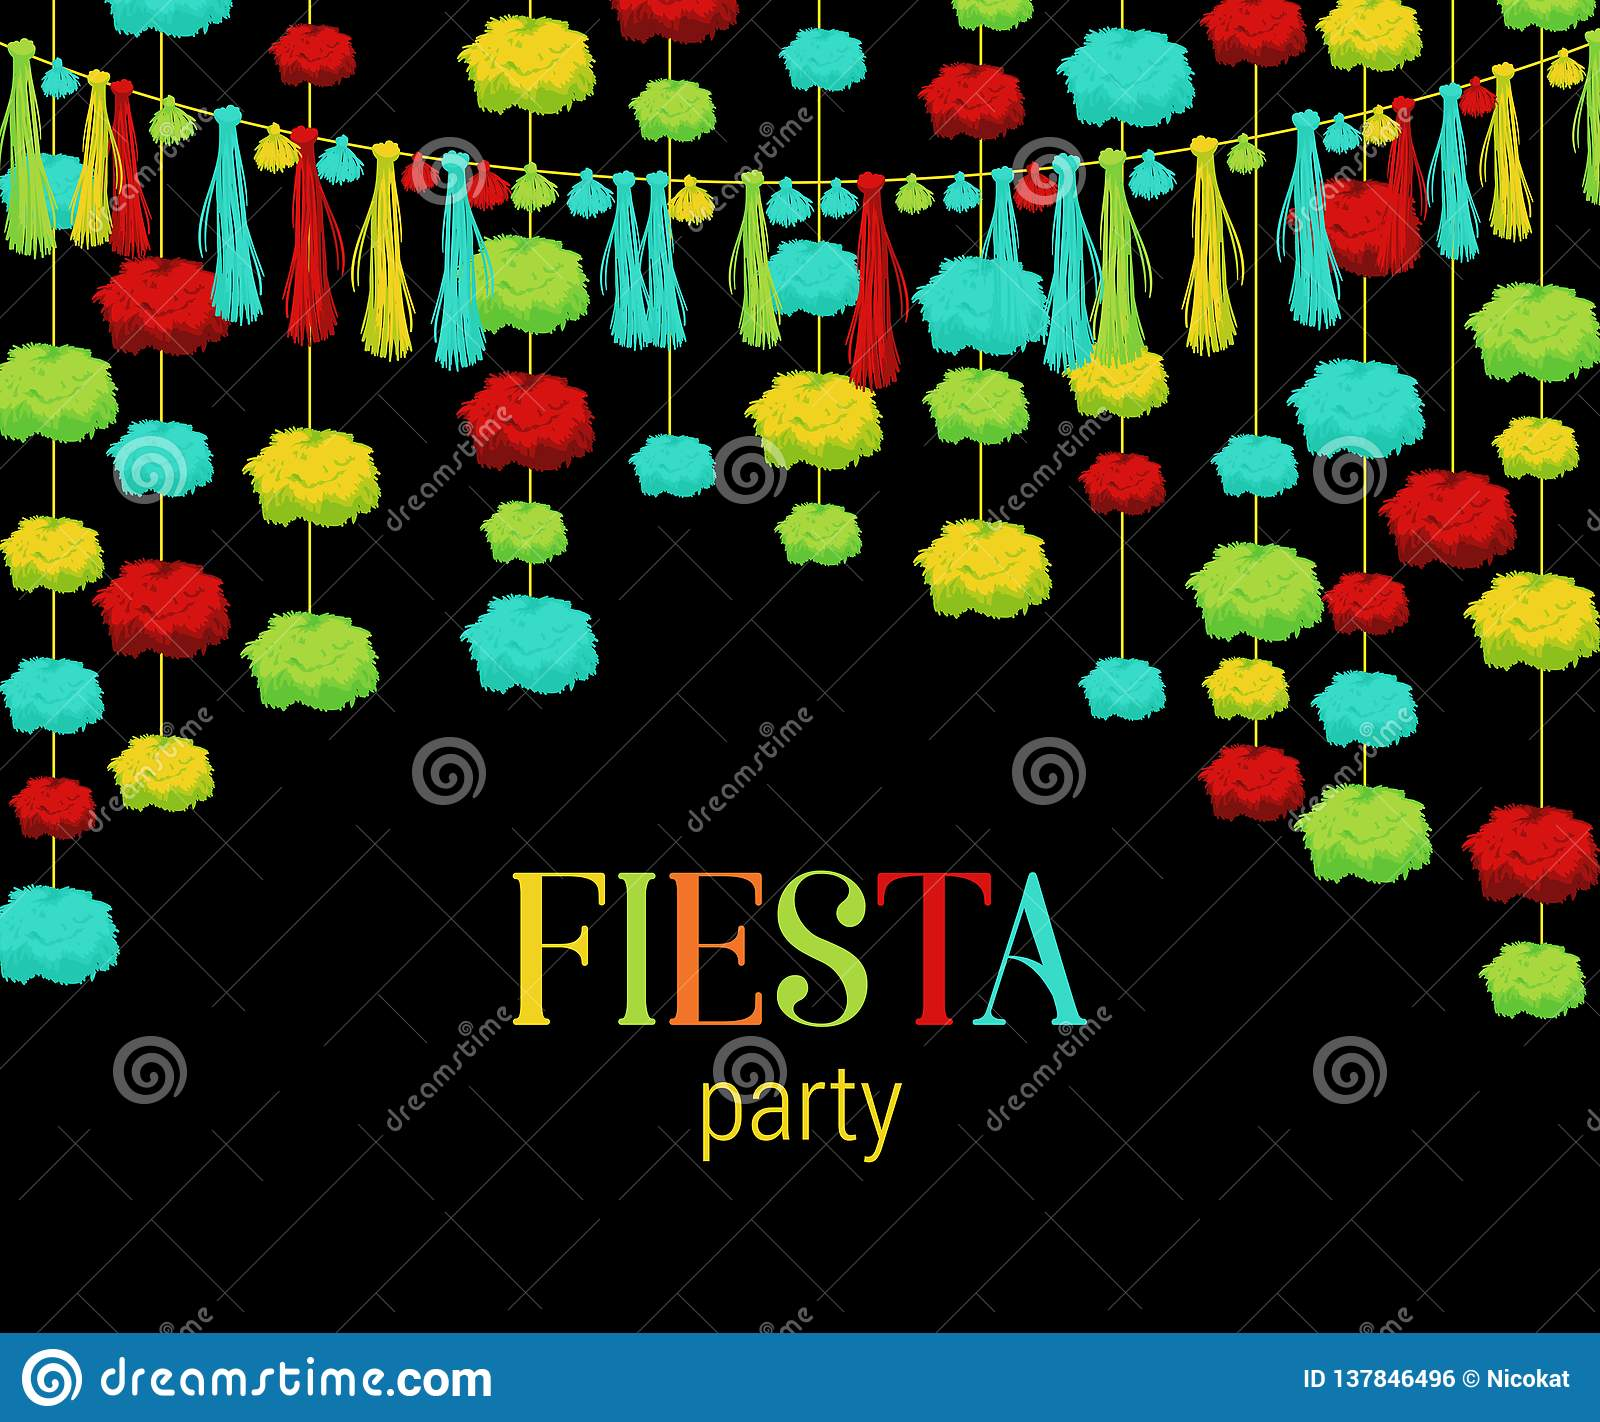 Fiesta Party Festive Background With Paper Pompons And Tassels Garland Design Template For Invitation Greeting Card Banner Pr Stock Vector Illustration Of Graphic Border 137846496